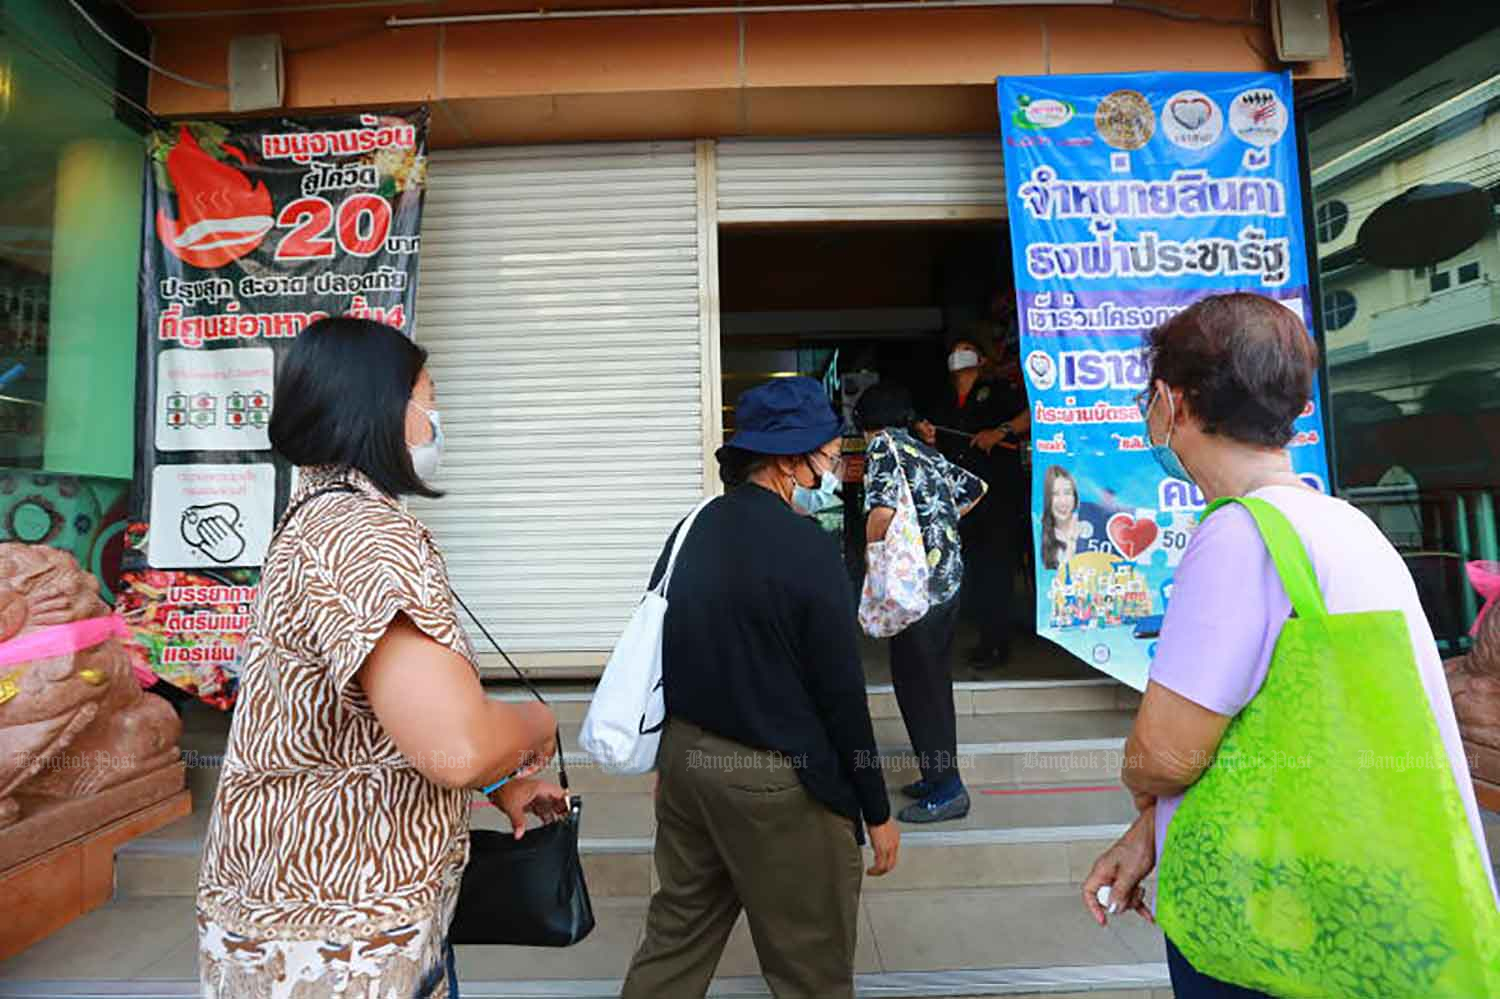 Holders of state welfare cards arrive at a store to buy discounted products provided by the government in Samut Prakan province in February. (Photo: Somchai Poomlard)